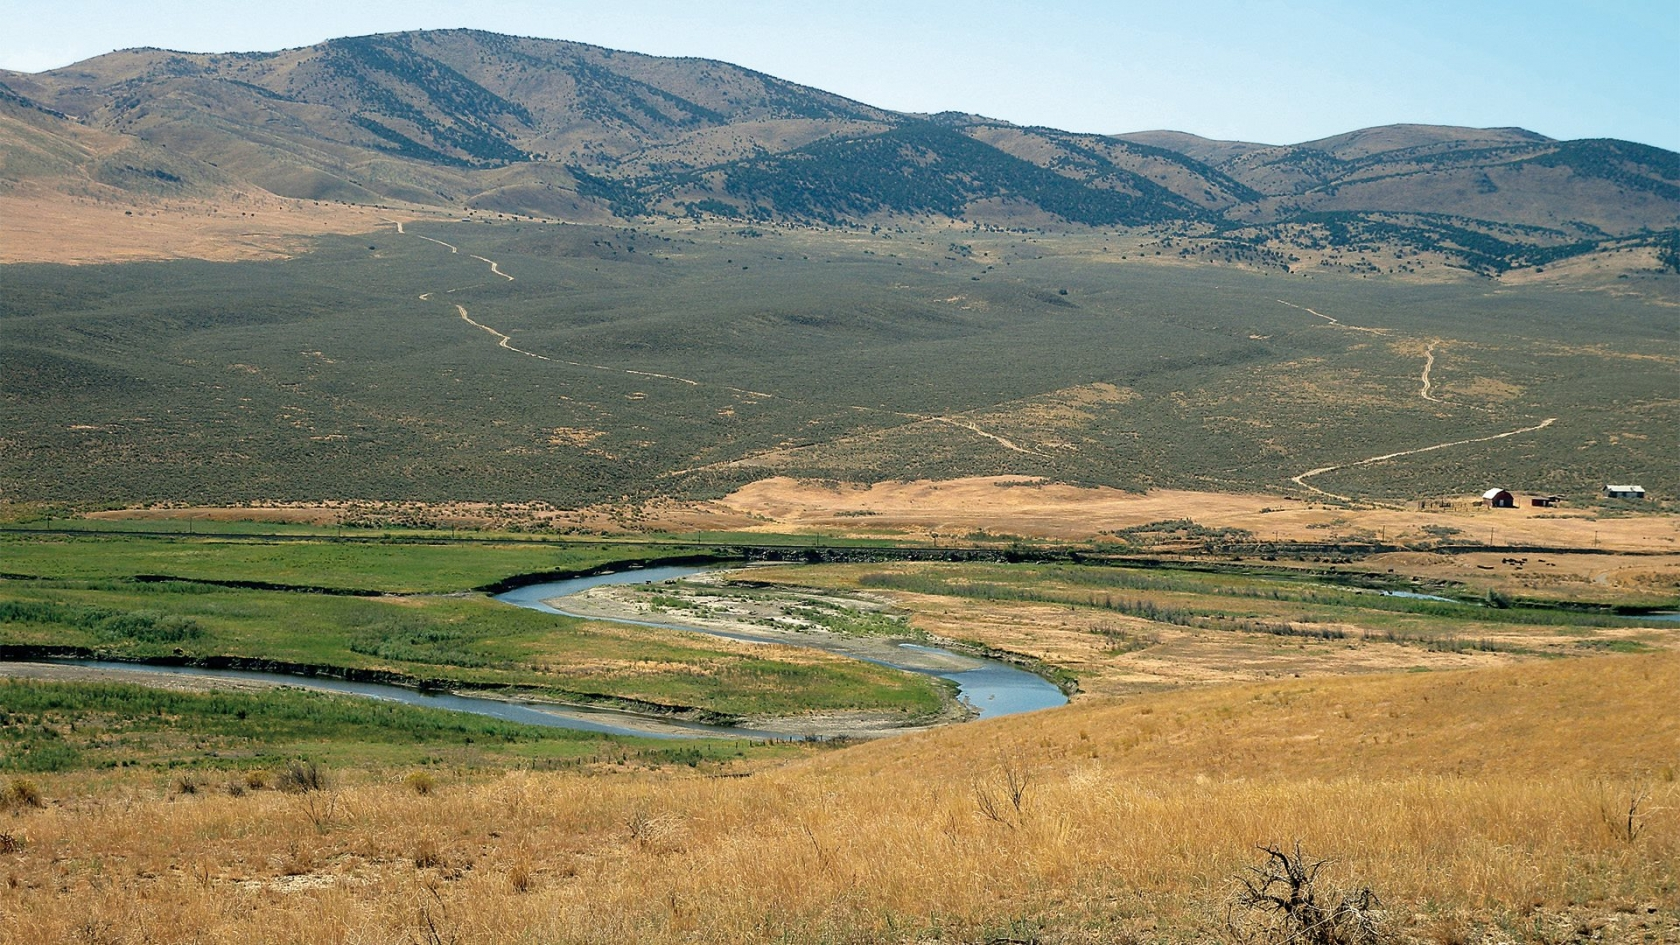 Humboldt River running through a valley in Nevada along the California National Historic Trail